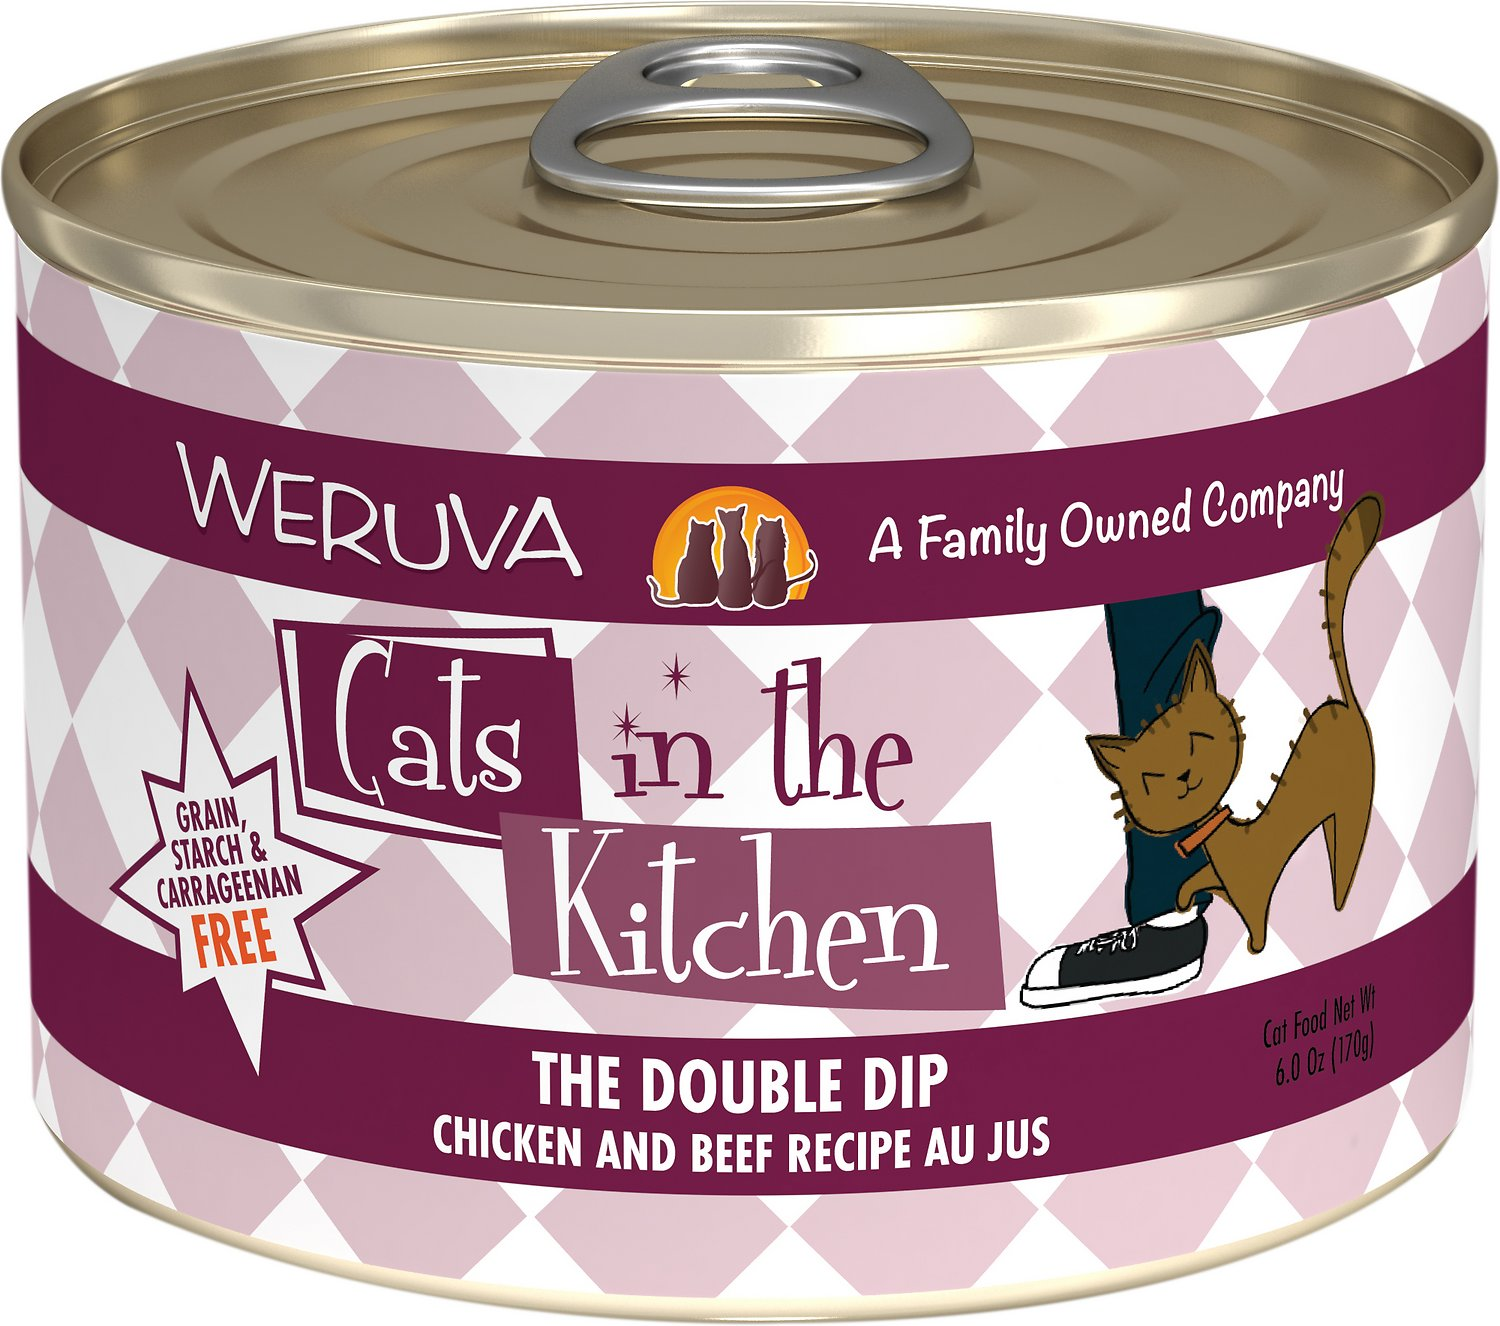 Weruva Cats in the Kitchen The Double Dip Chicken & Beef Au Jus Grain-Free Wet Cat Food, 6-oz